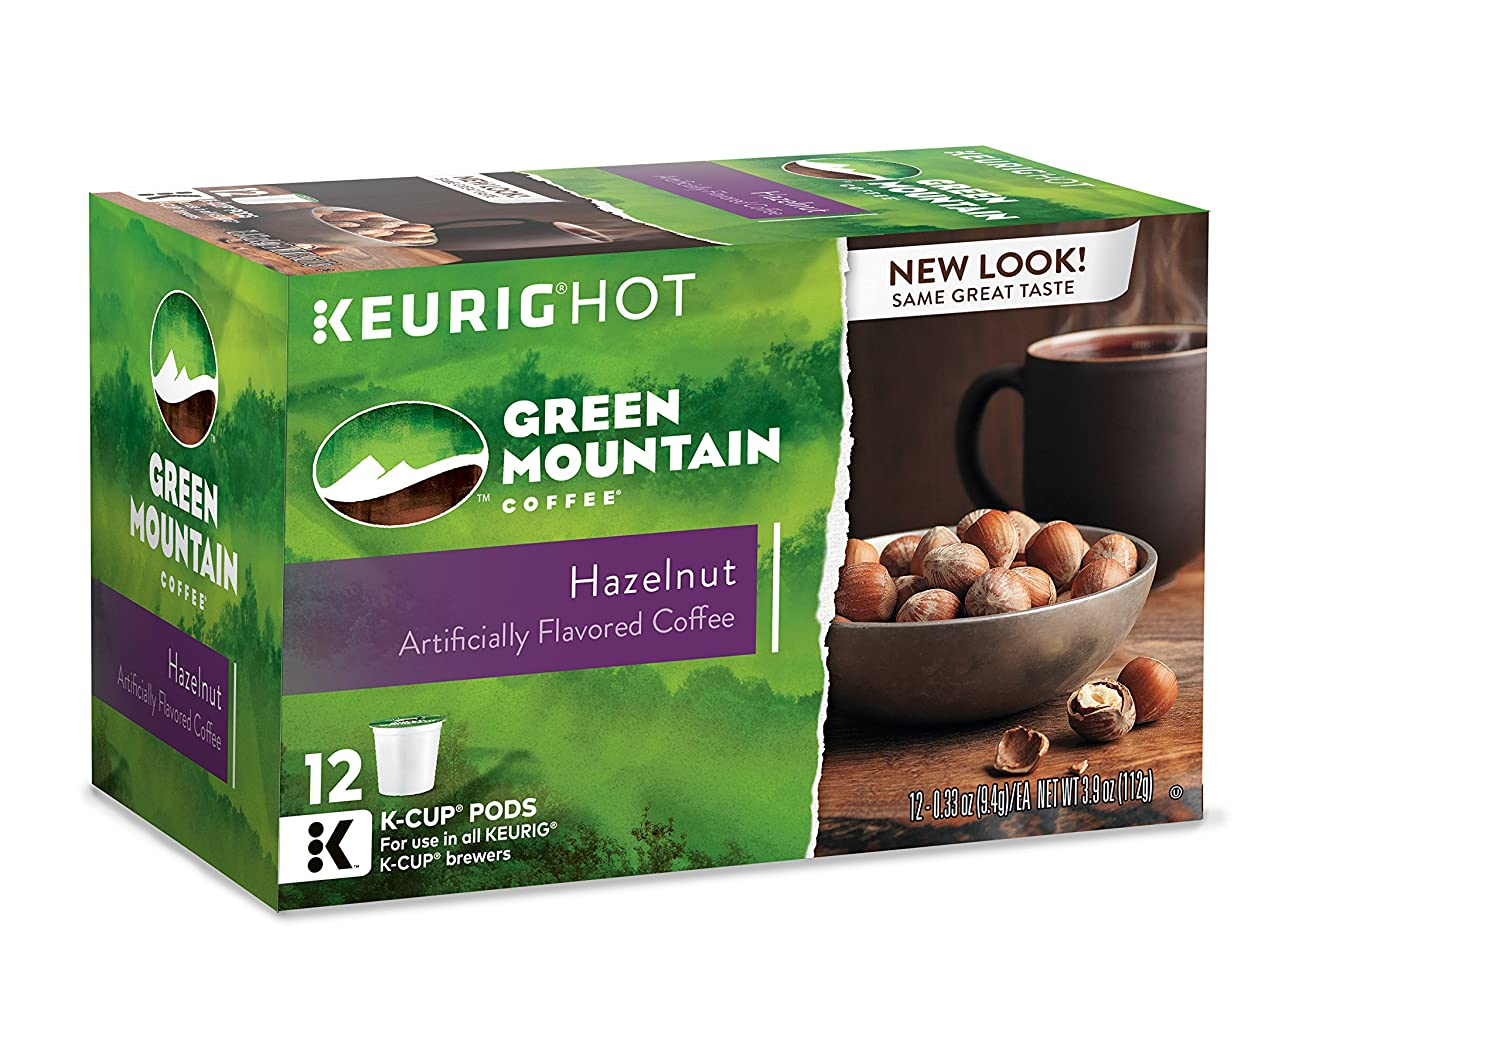 green mountain coffee hazelnut keurig singleserve kcup pods light roast coffee 72 count 6 boxes of 12 pods amazoncom grocery u0026 gourmet food - K Cups Bulk